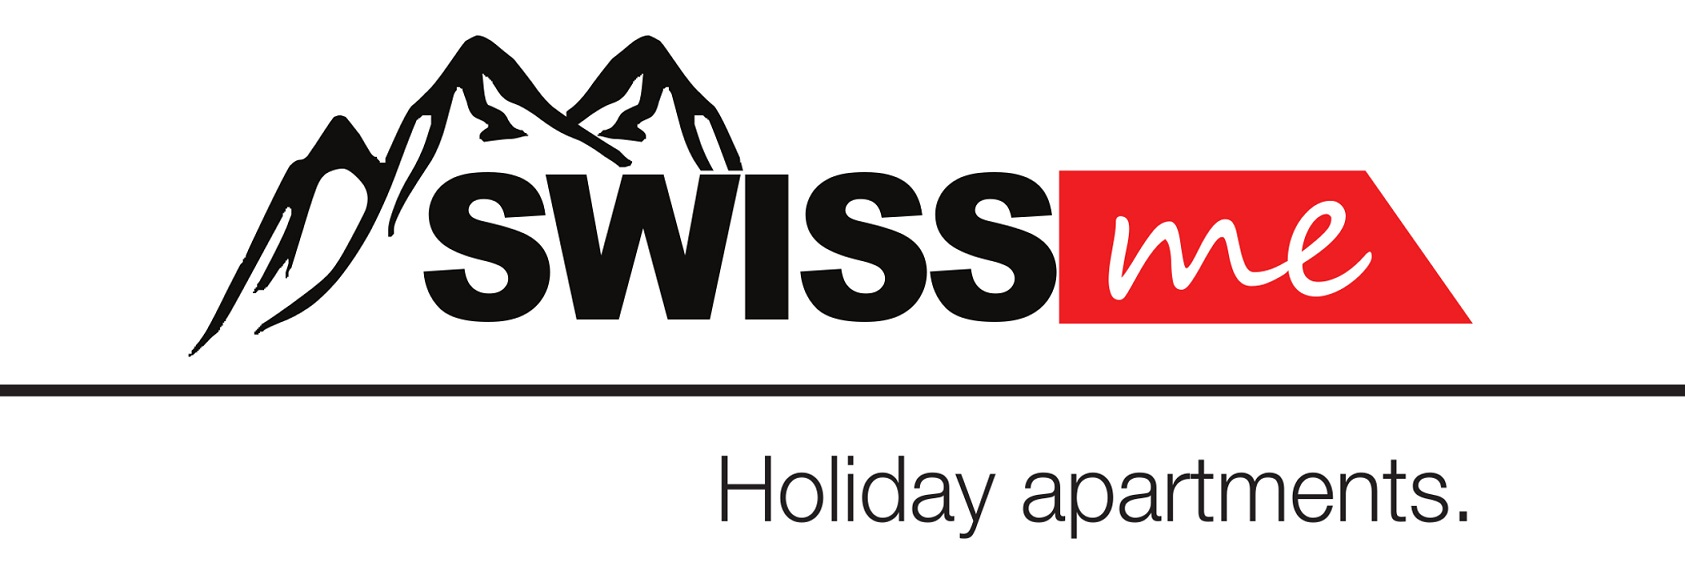 SWISS me | Holiday apartments.